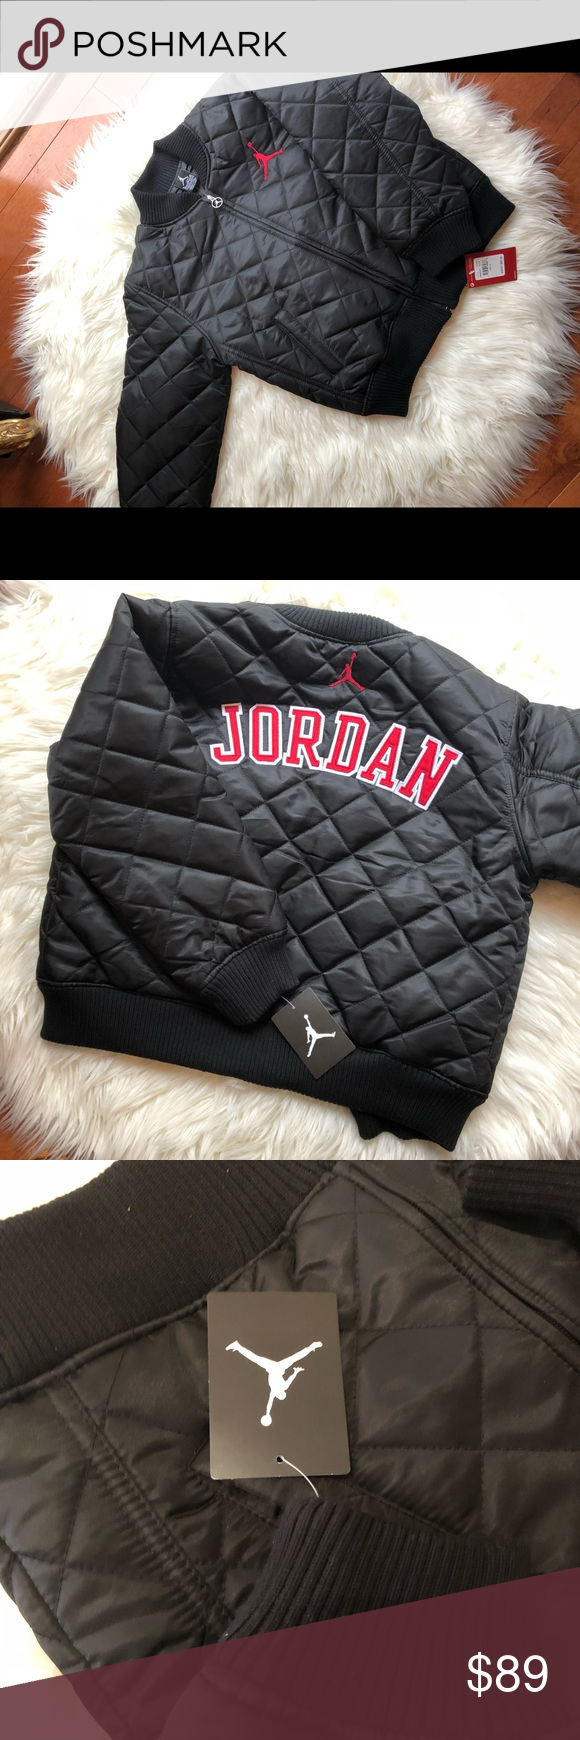 57697b5f6d0e Jordans Boys bomber jacket (size m) BRAND NEW Brand new boys bomber jacket  Size  boys Medium Never used with tags Jordan bomber jacket Perfect fall  jacket ...